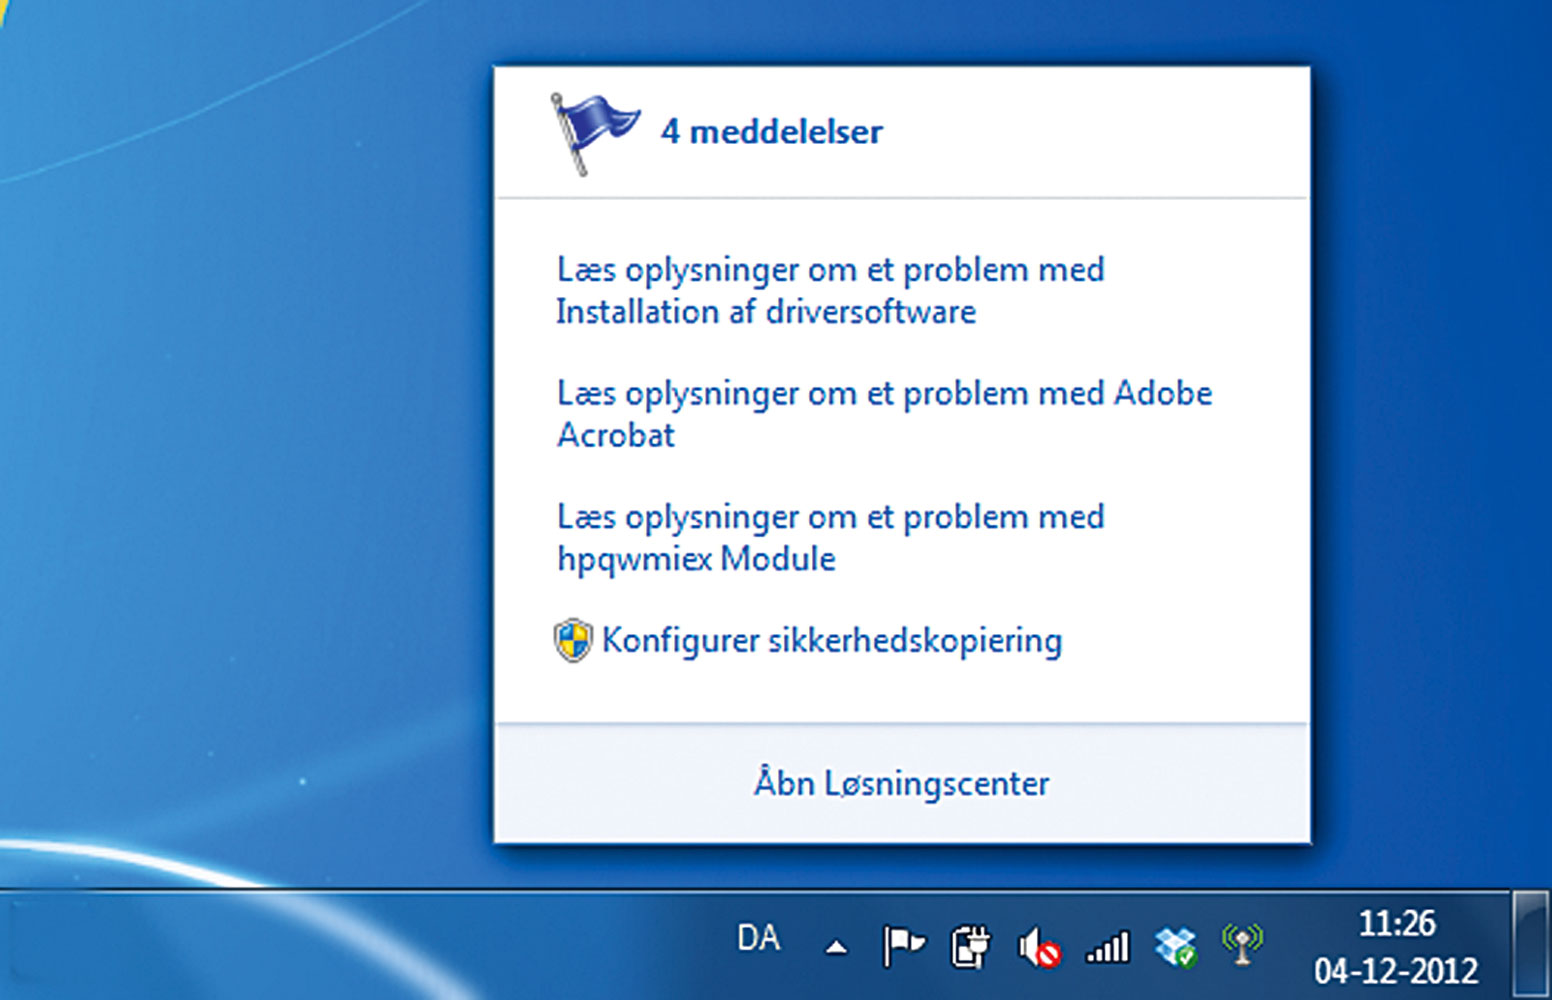 Udnyt Løsningscenter i Windows 7